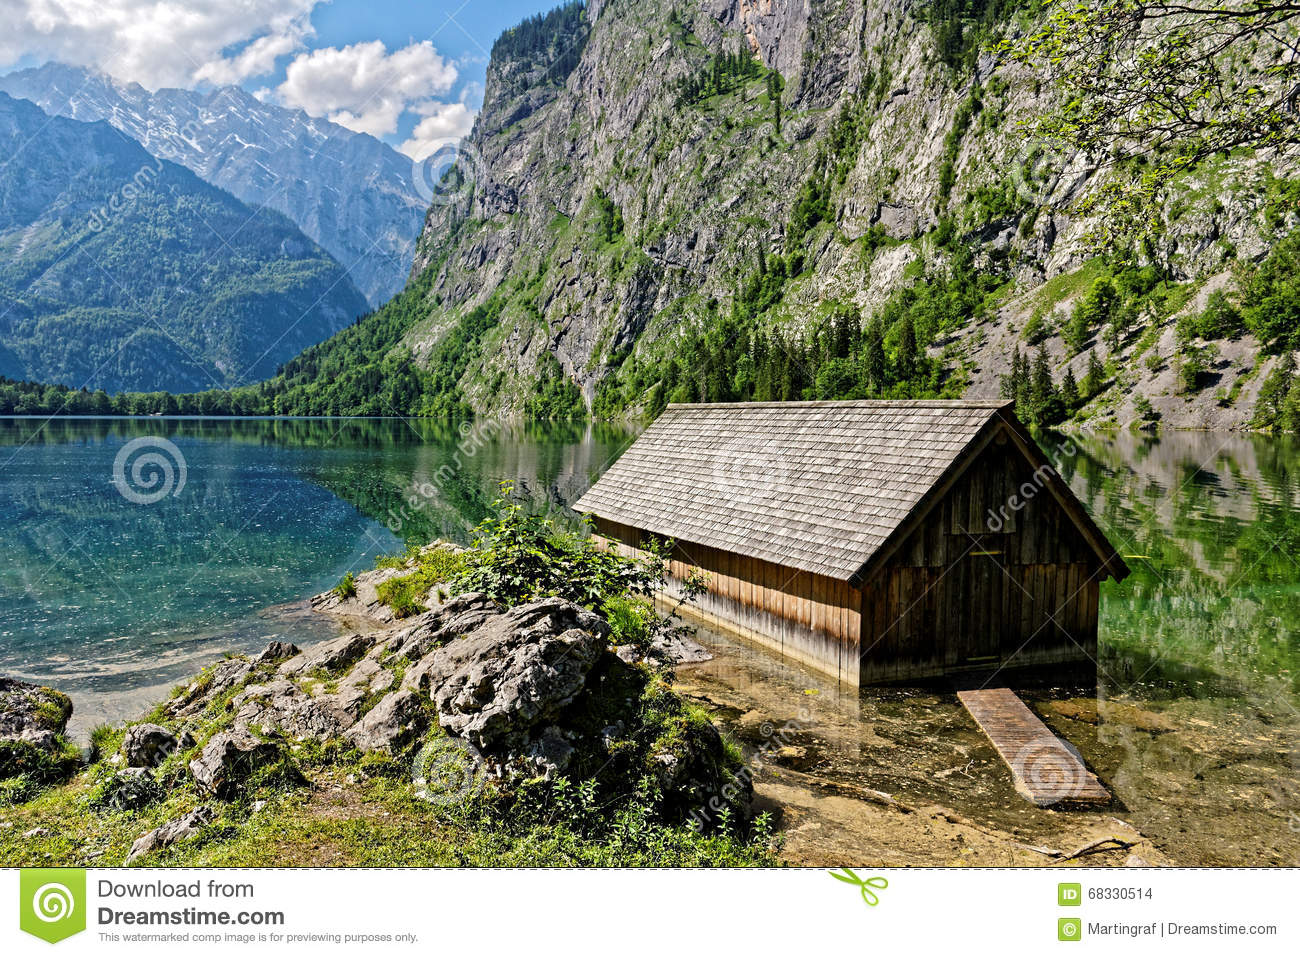 Old boathouse in scenic alpine landscape